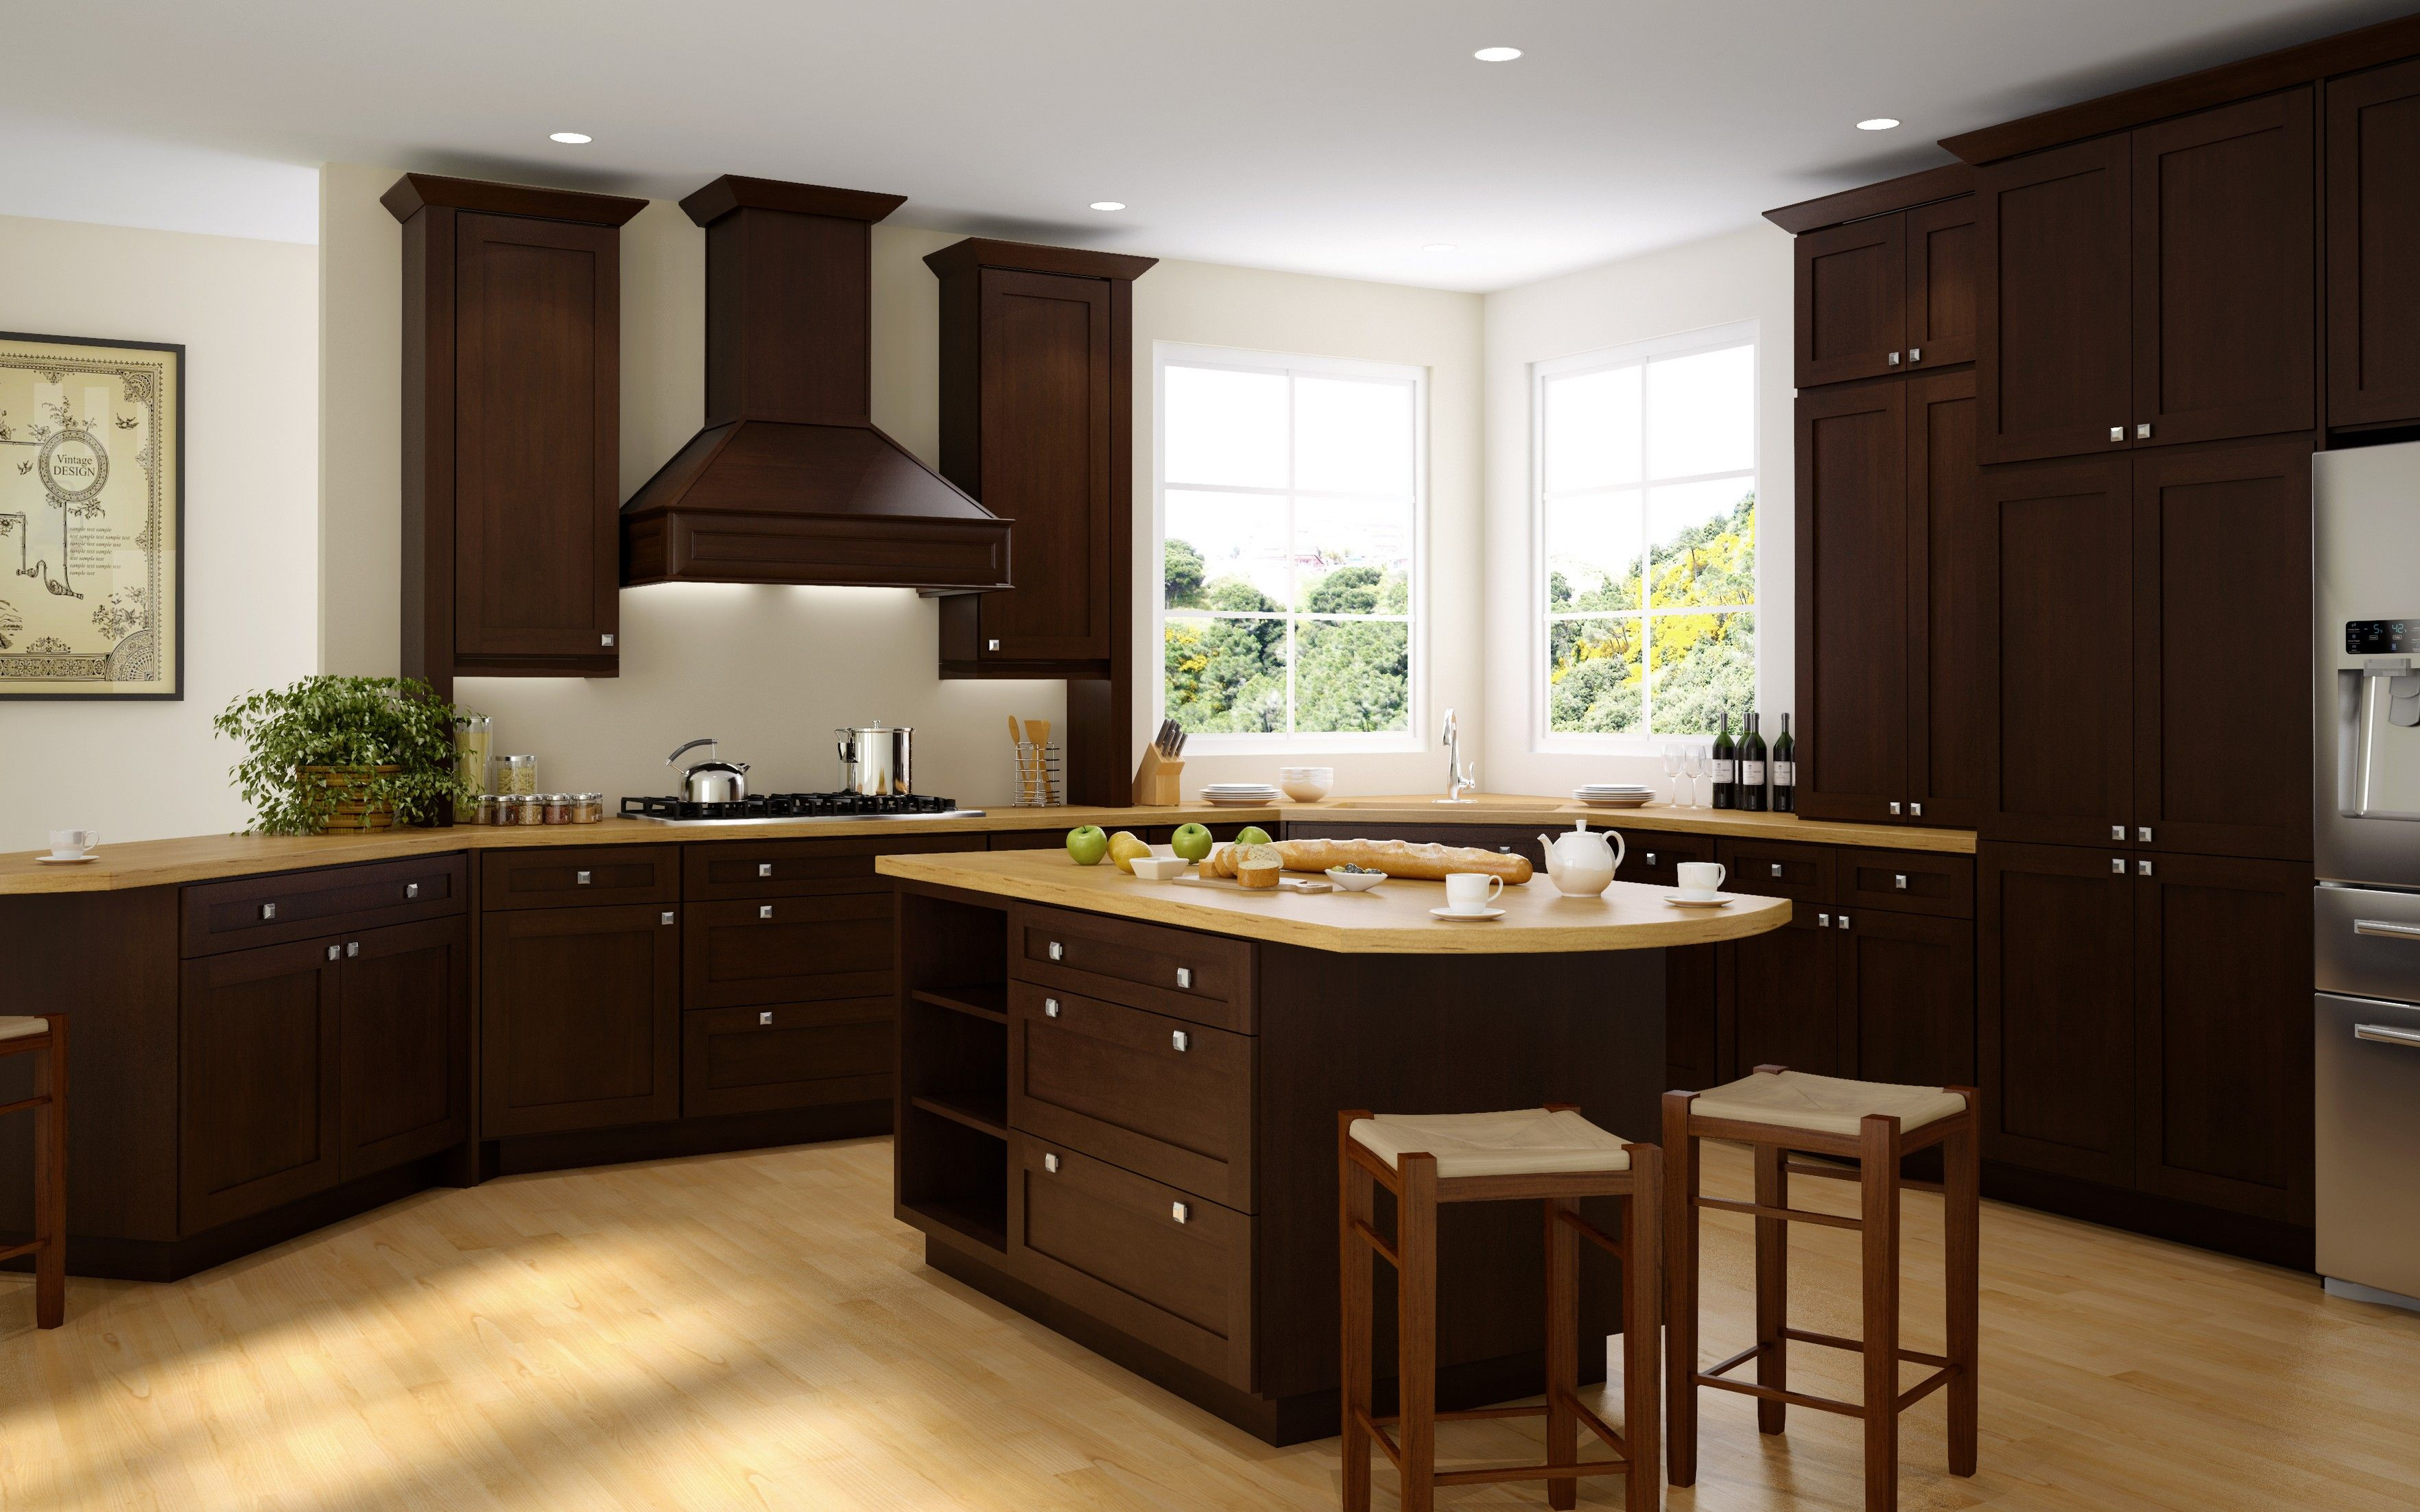 8 Best Hardware Styles For Shaker Cabinets In 2020 Assembled Kitchen Cabinets Kitchen Cabinet Styles Cheap Kitchen Cabinets